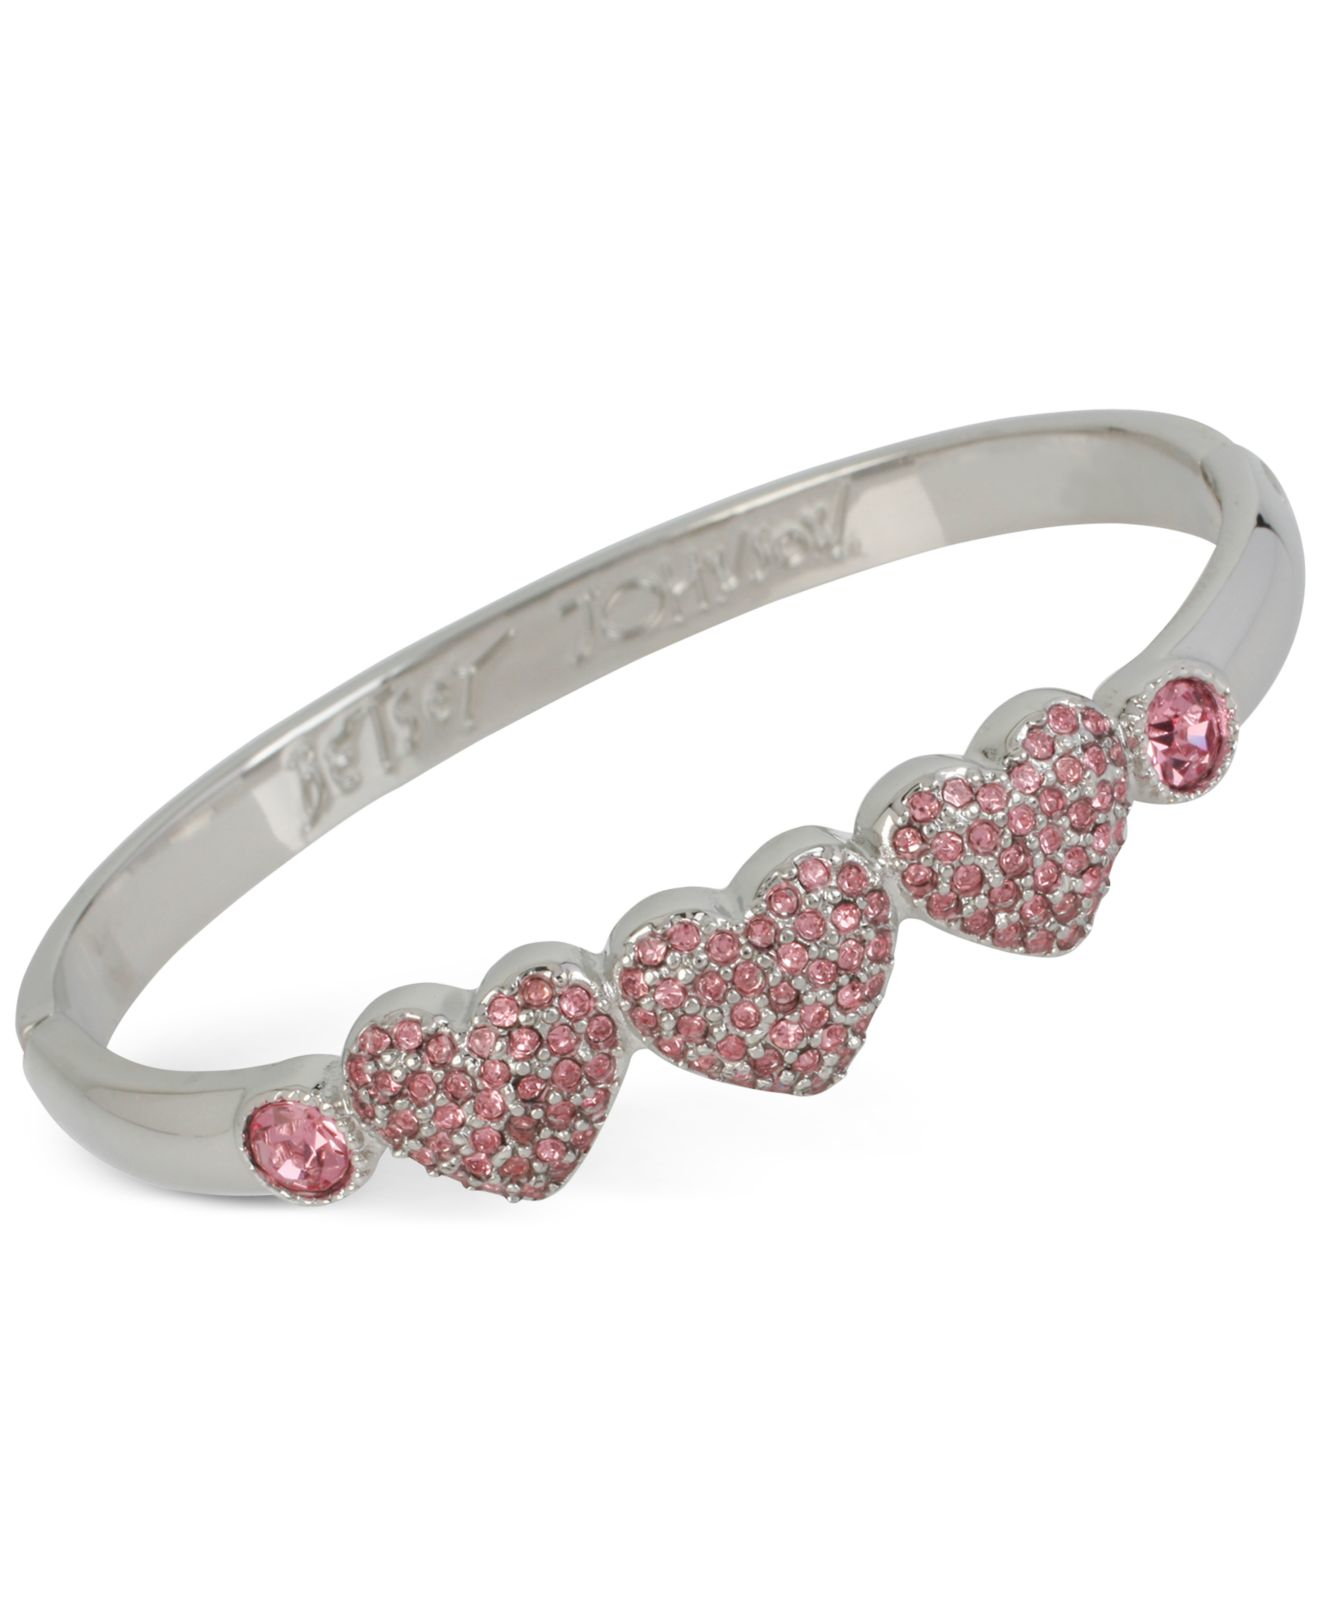 b2fb508d4429d Lyst - Betsey Johnson Silver-tone Crystal Heart And Stone Bangle ...